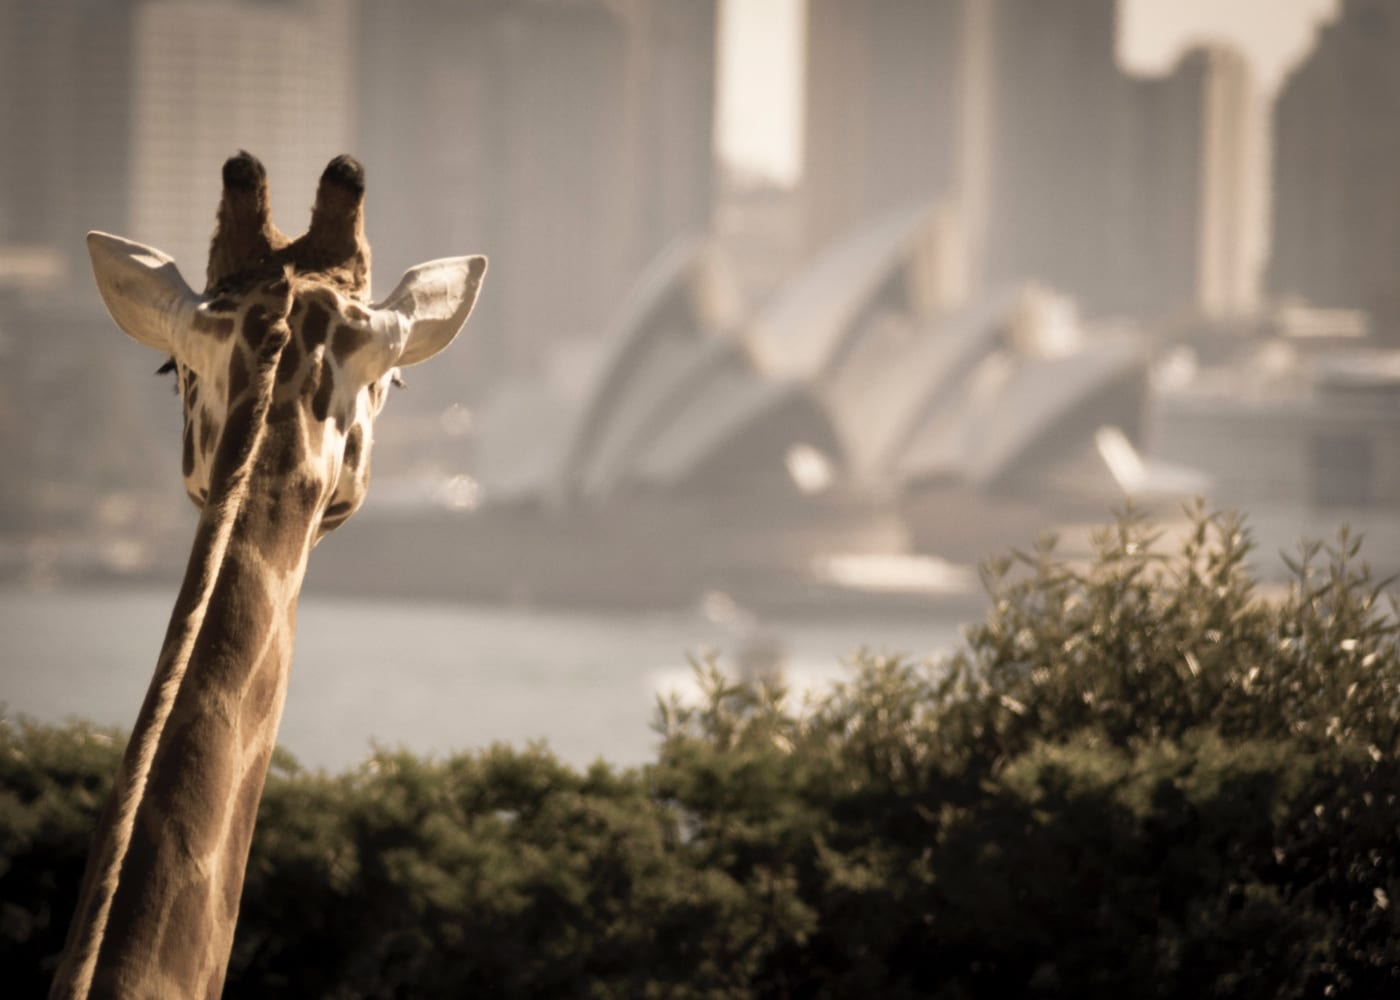 taronga zoo | 10 most family-friendly things to do in Sydney with kids